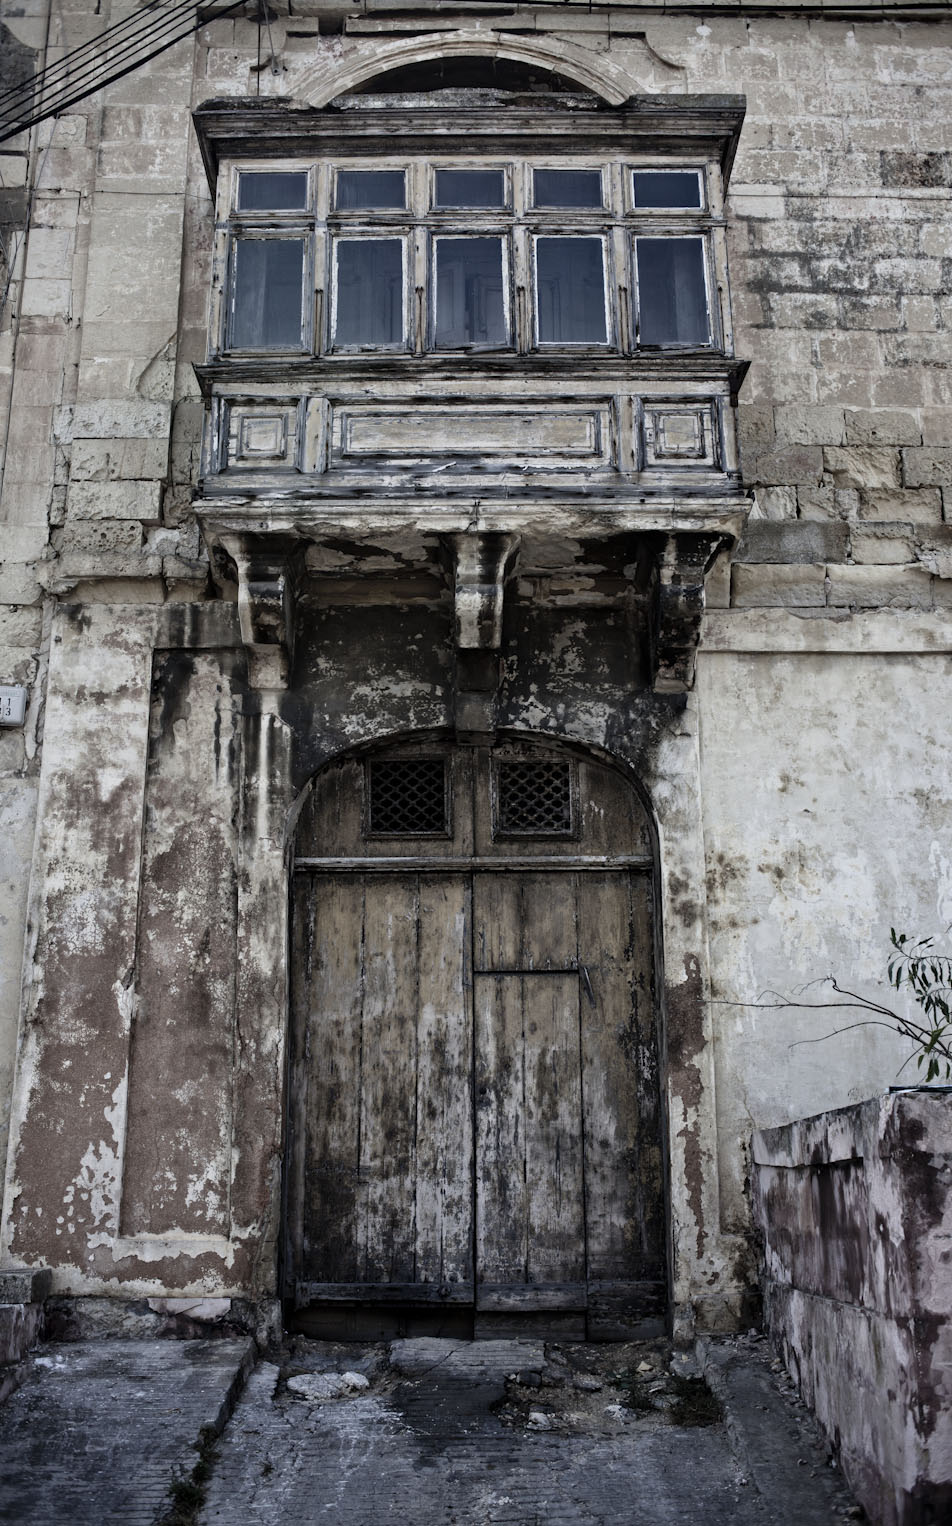 Wabi sabi Doors and facades, with traditional Maltese balcony, Msida, Malta ©Helen Jones-Florio